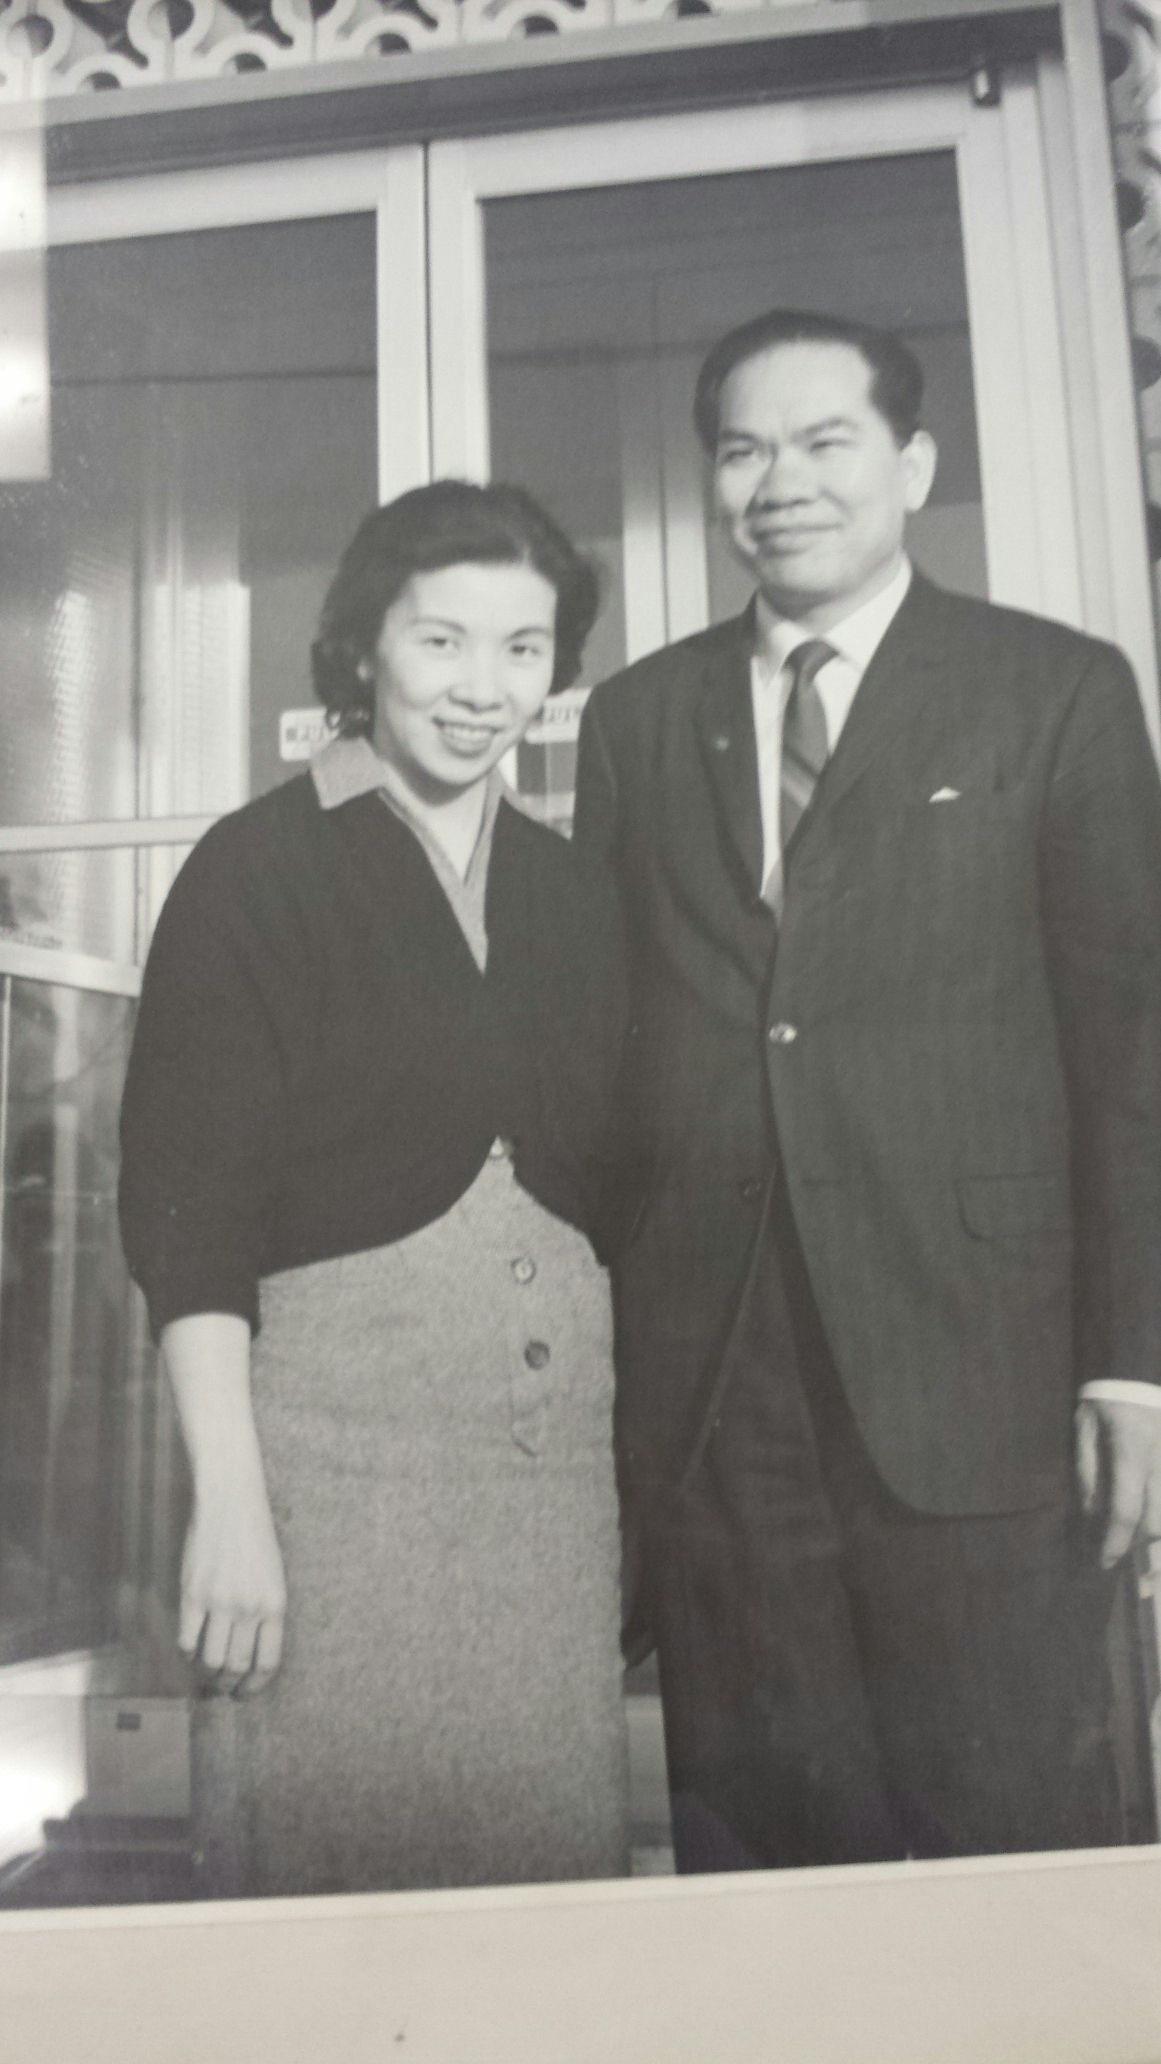 Kowloon - Madeline and William Wong